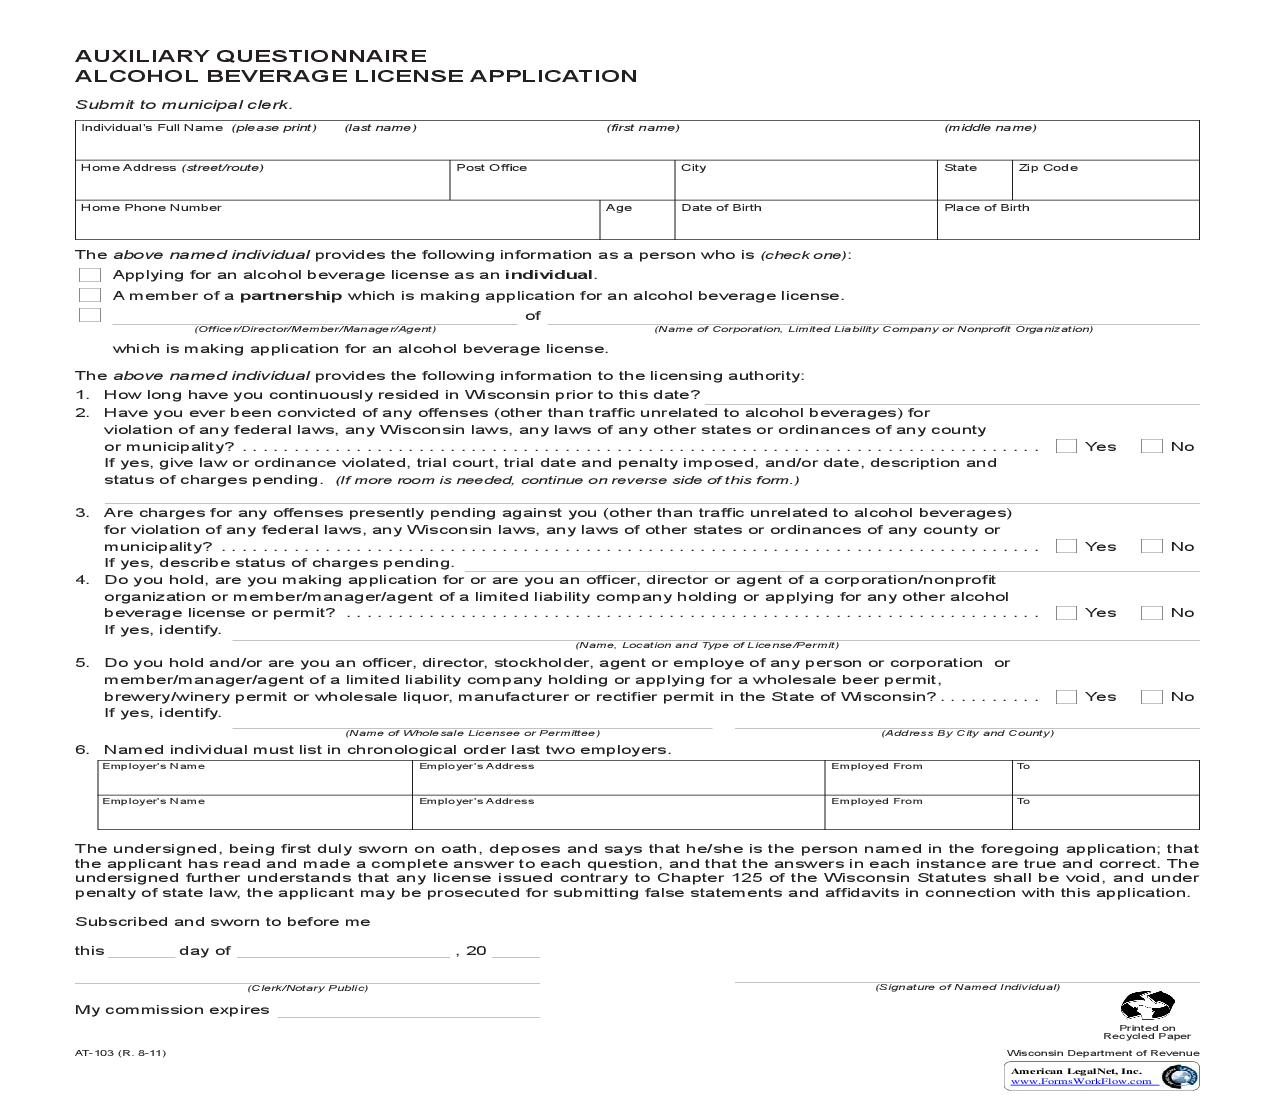 Auxiliary Questionnaire Alcohol Beverage License Application {AT-103} | Pdf Fpdf Doc Docx | Wisconsin